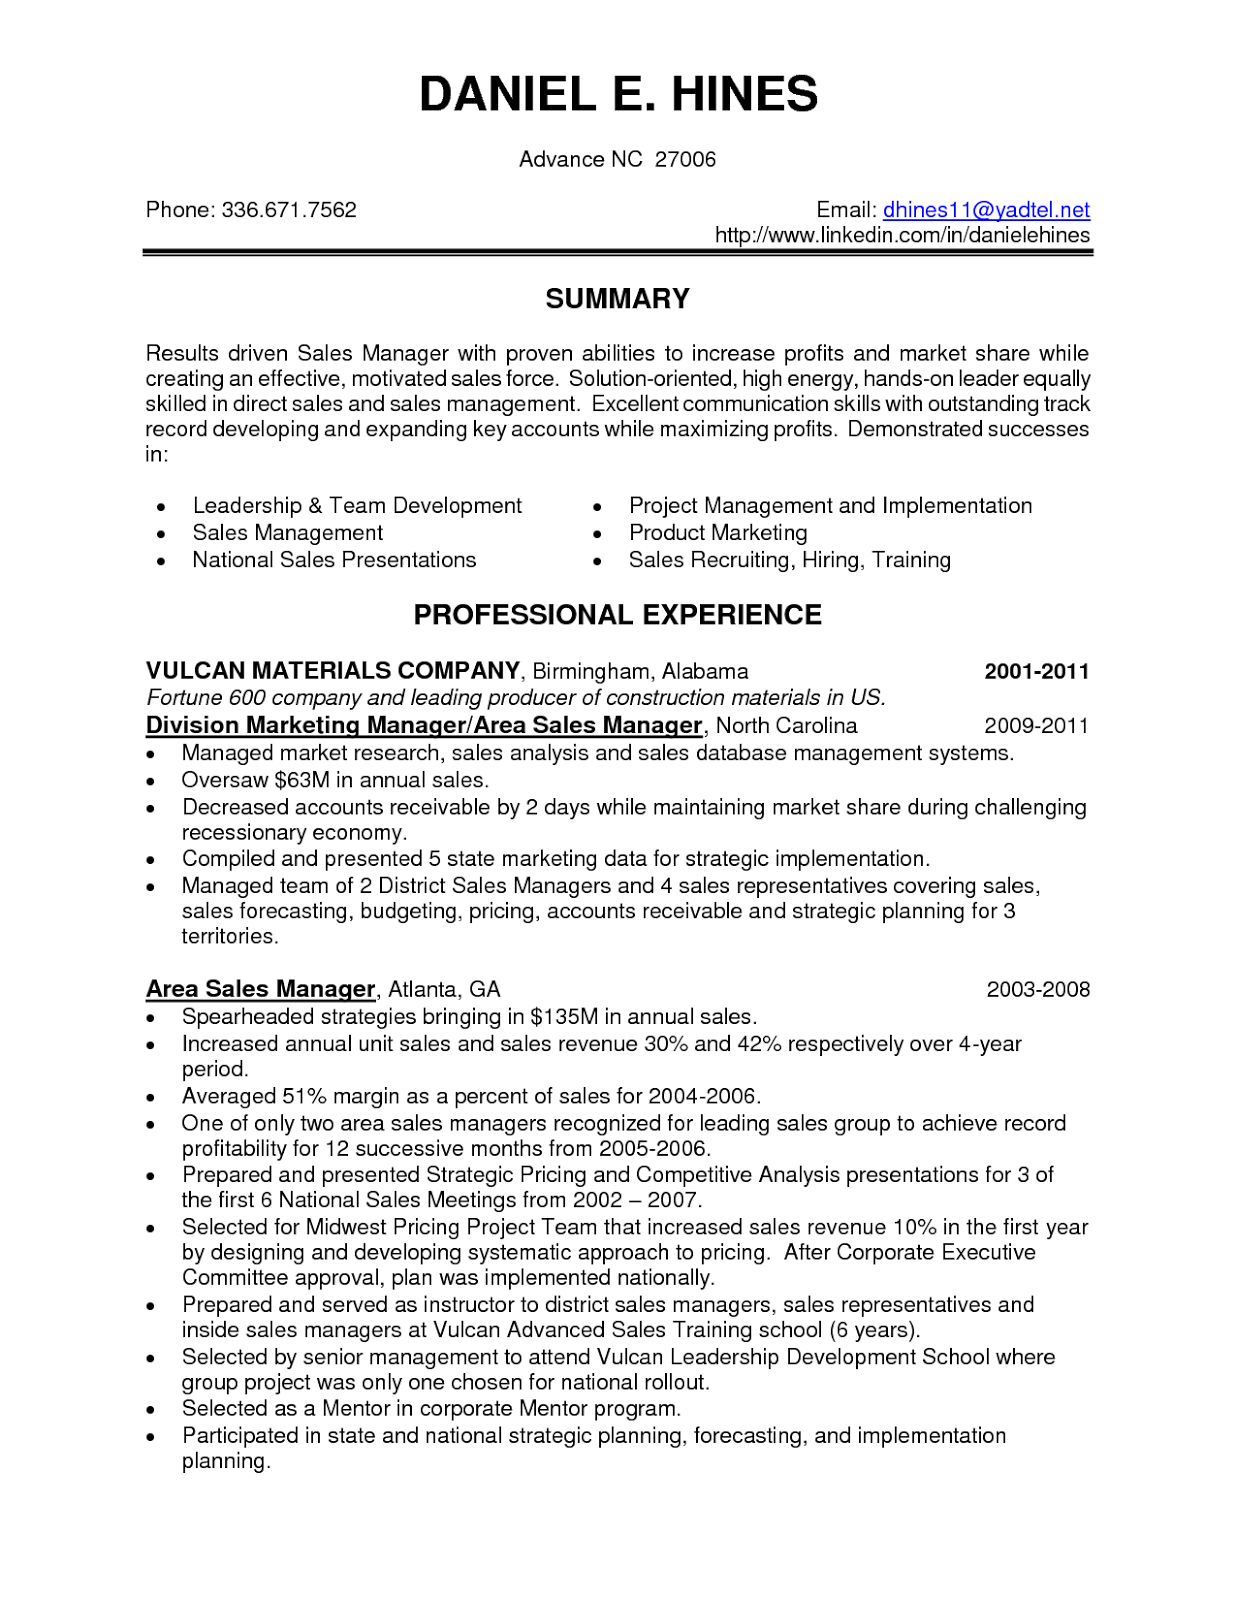 best sales cv construction representative sample resume sample best sales cv construction representative sample resume sample